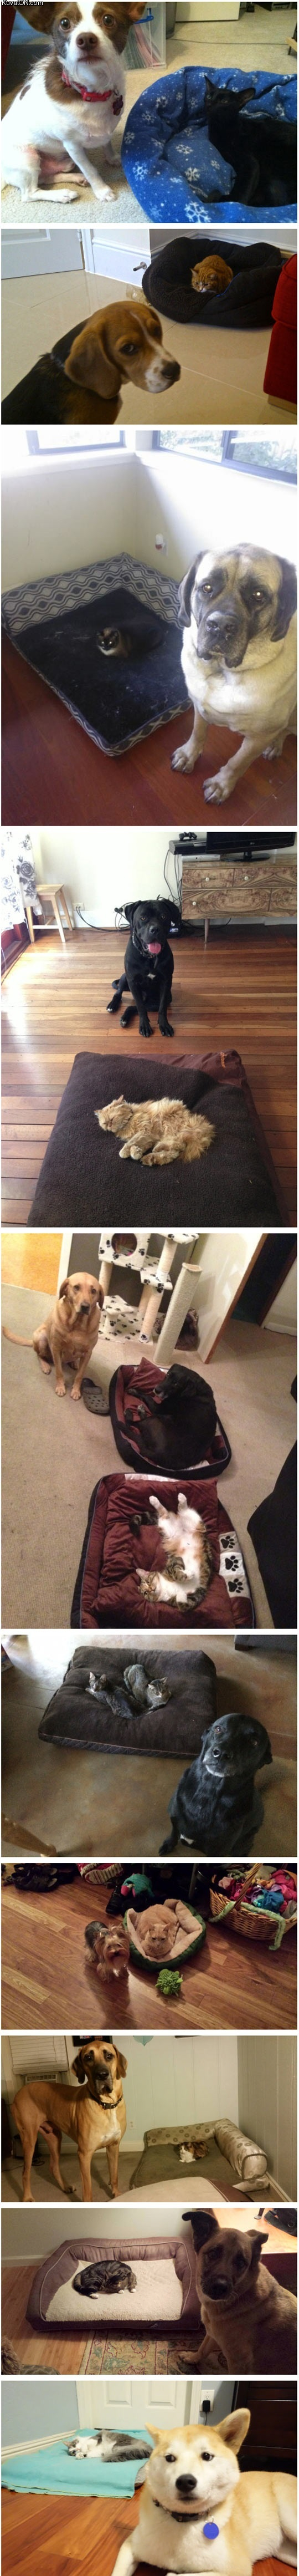 10_dog_beds_stolen_by_cats